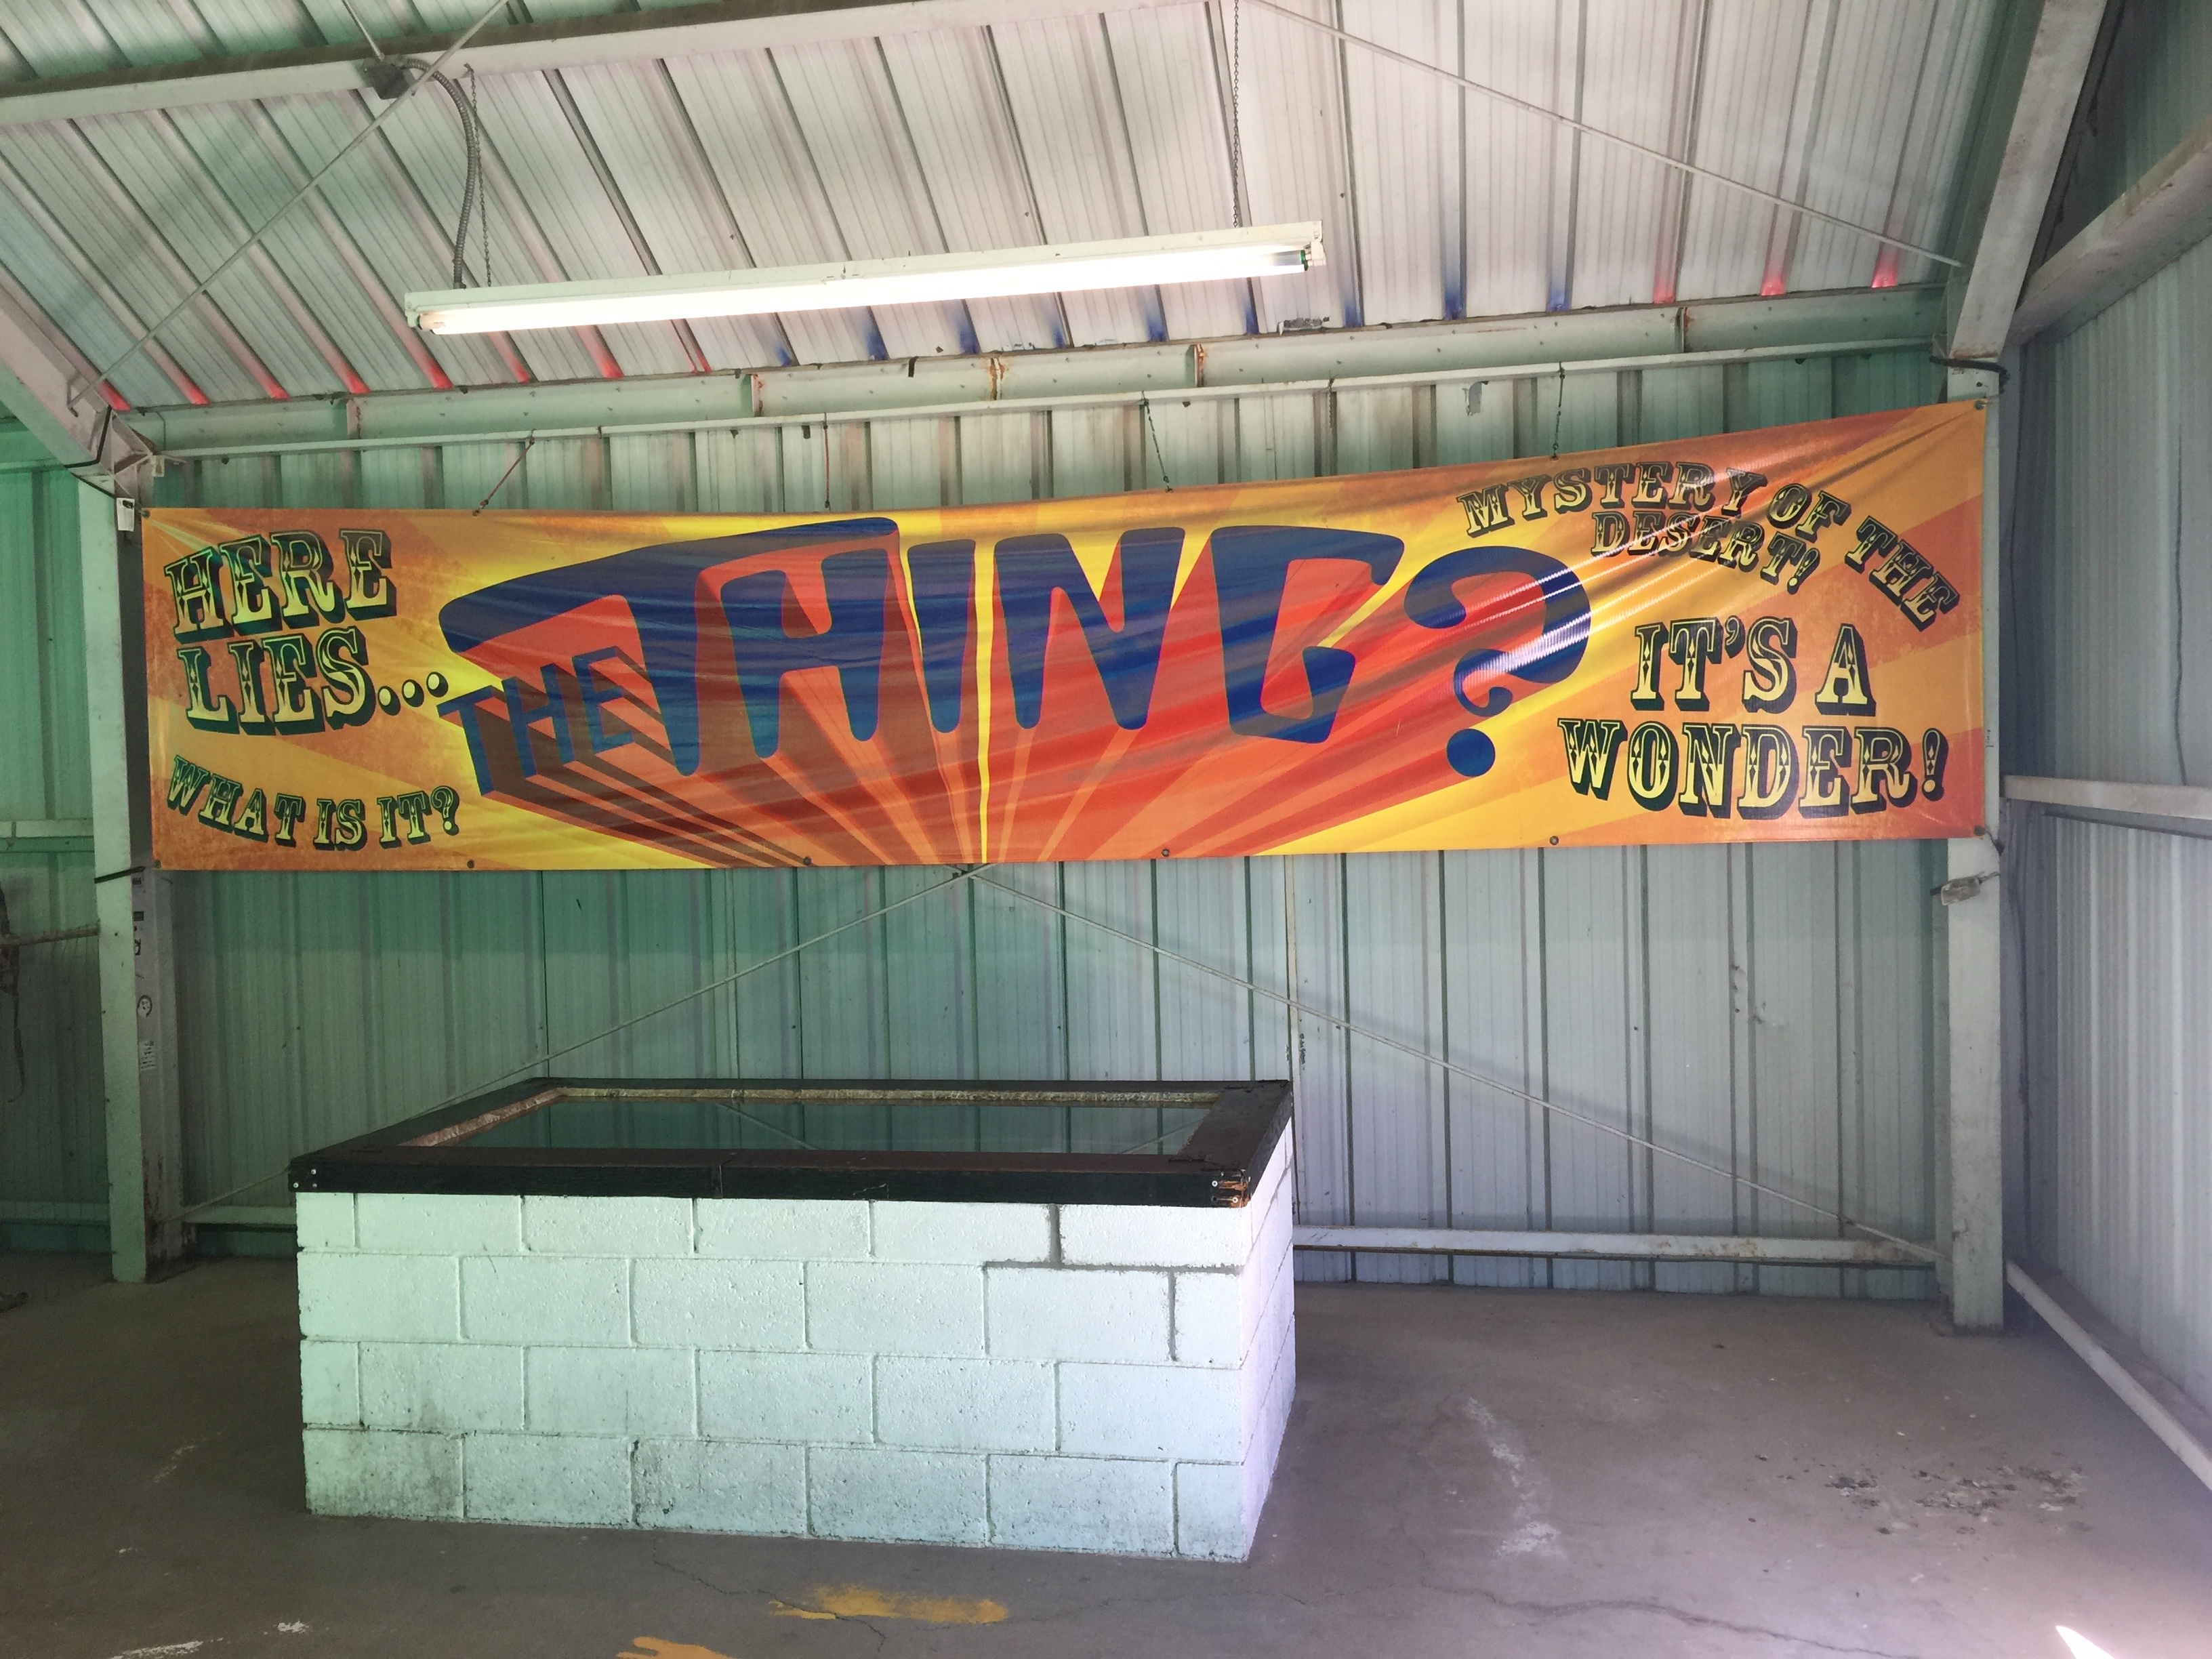 Banner and cinder-block coffin containing The Thing at Bowlin's The Thing? roadside attraction, March 18, 2017